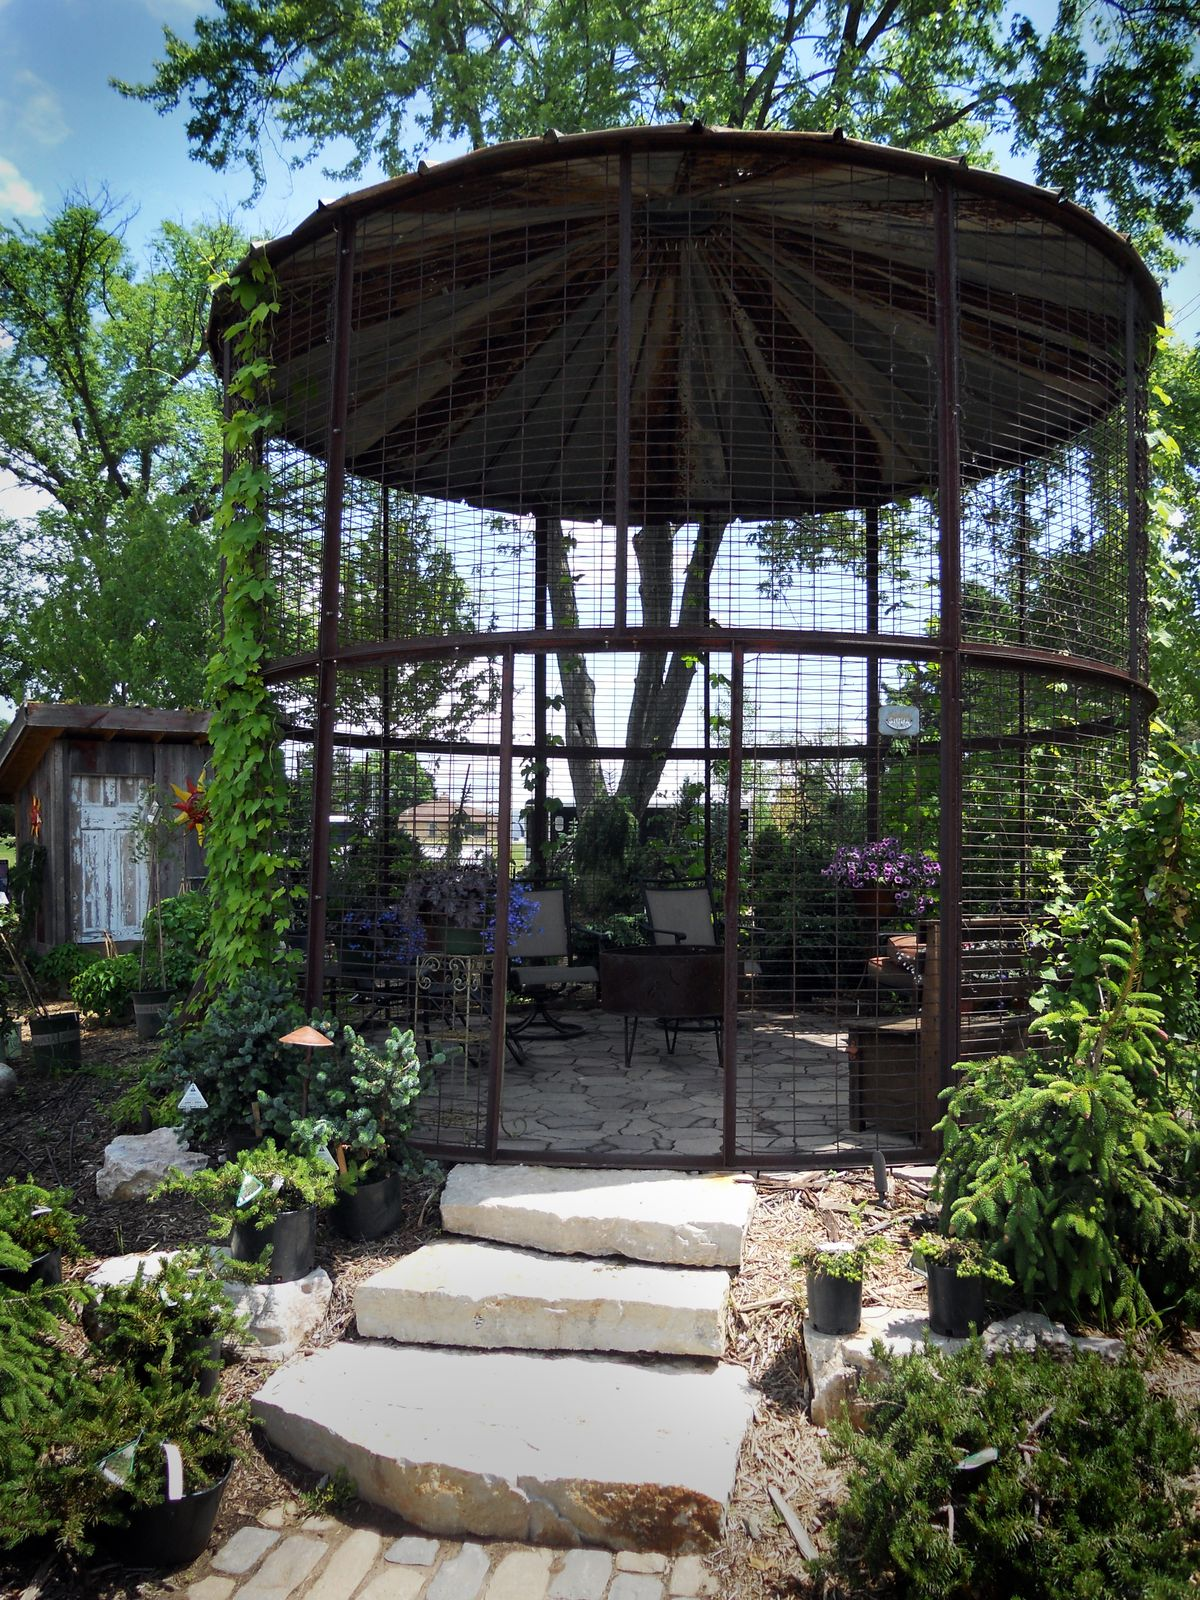 1000 images about repurposing on pinterest repurposed Eau claire craigslist farm and garden